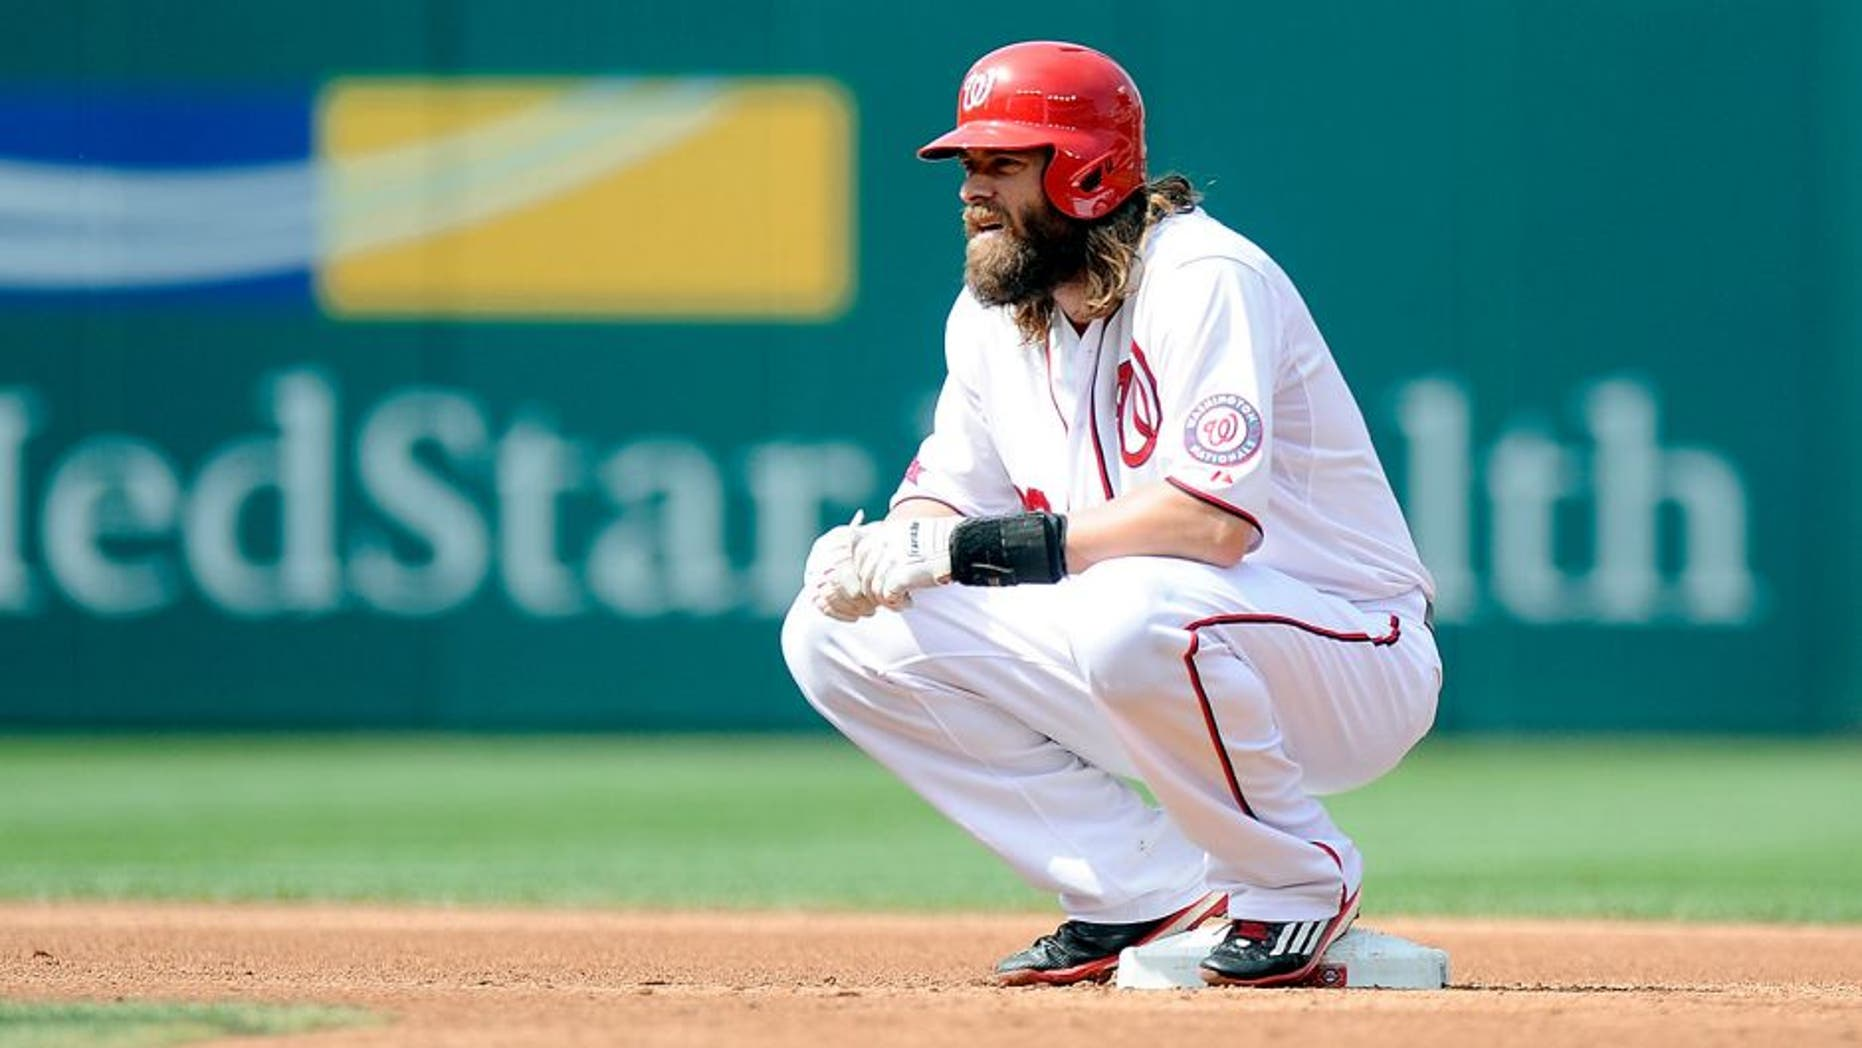 WASHINGTON, DC - AUGUST 30: Jayson Werth #28 of the Washington Nationals rests during a pitching change in the game against the Miami Marlins at Nationals Park on August 30, 2015 in Washington, DC. (Photo by G Fiume/Getty Images)